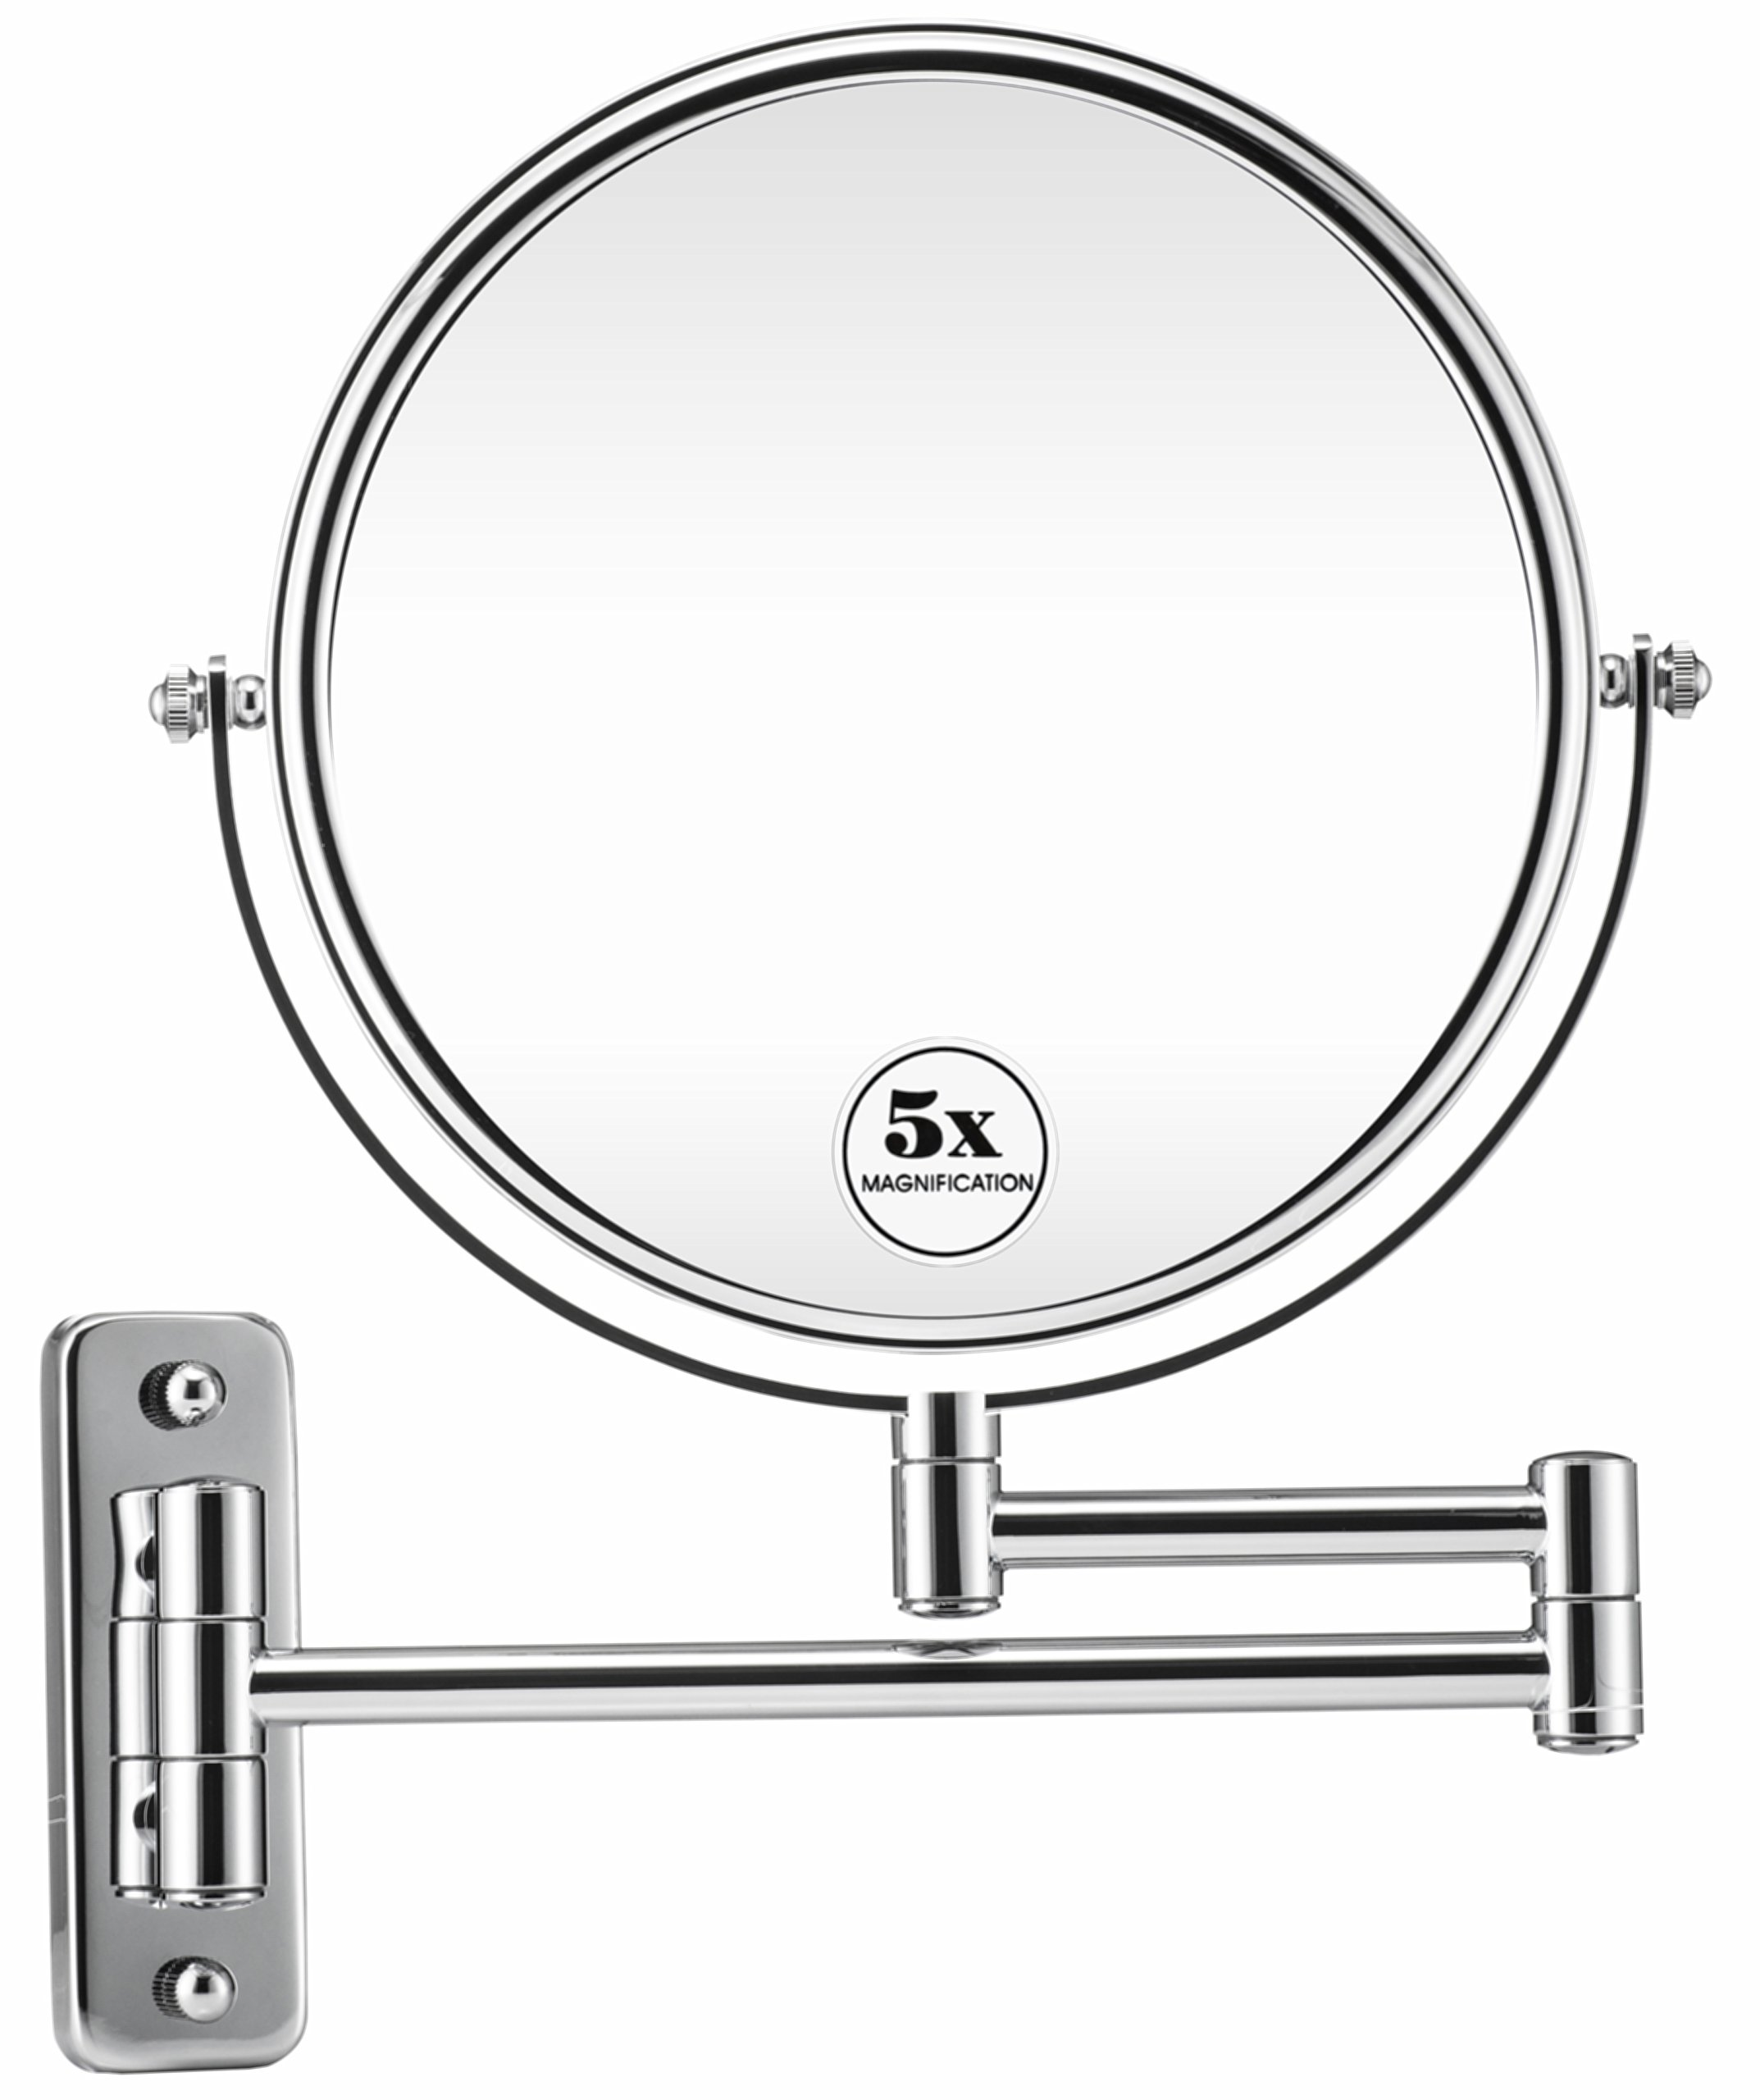 Gloriastar Wall Mount Makeup Mirror - 1x/5x Magnification 8-Inch Two-Sided Cosmetic Mirror Chrome Finish